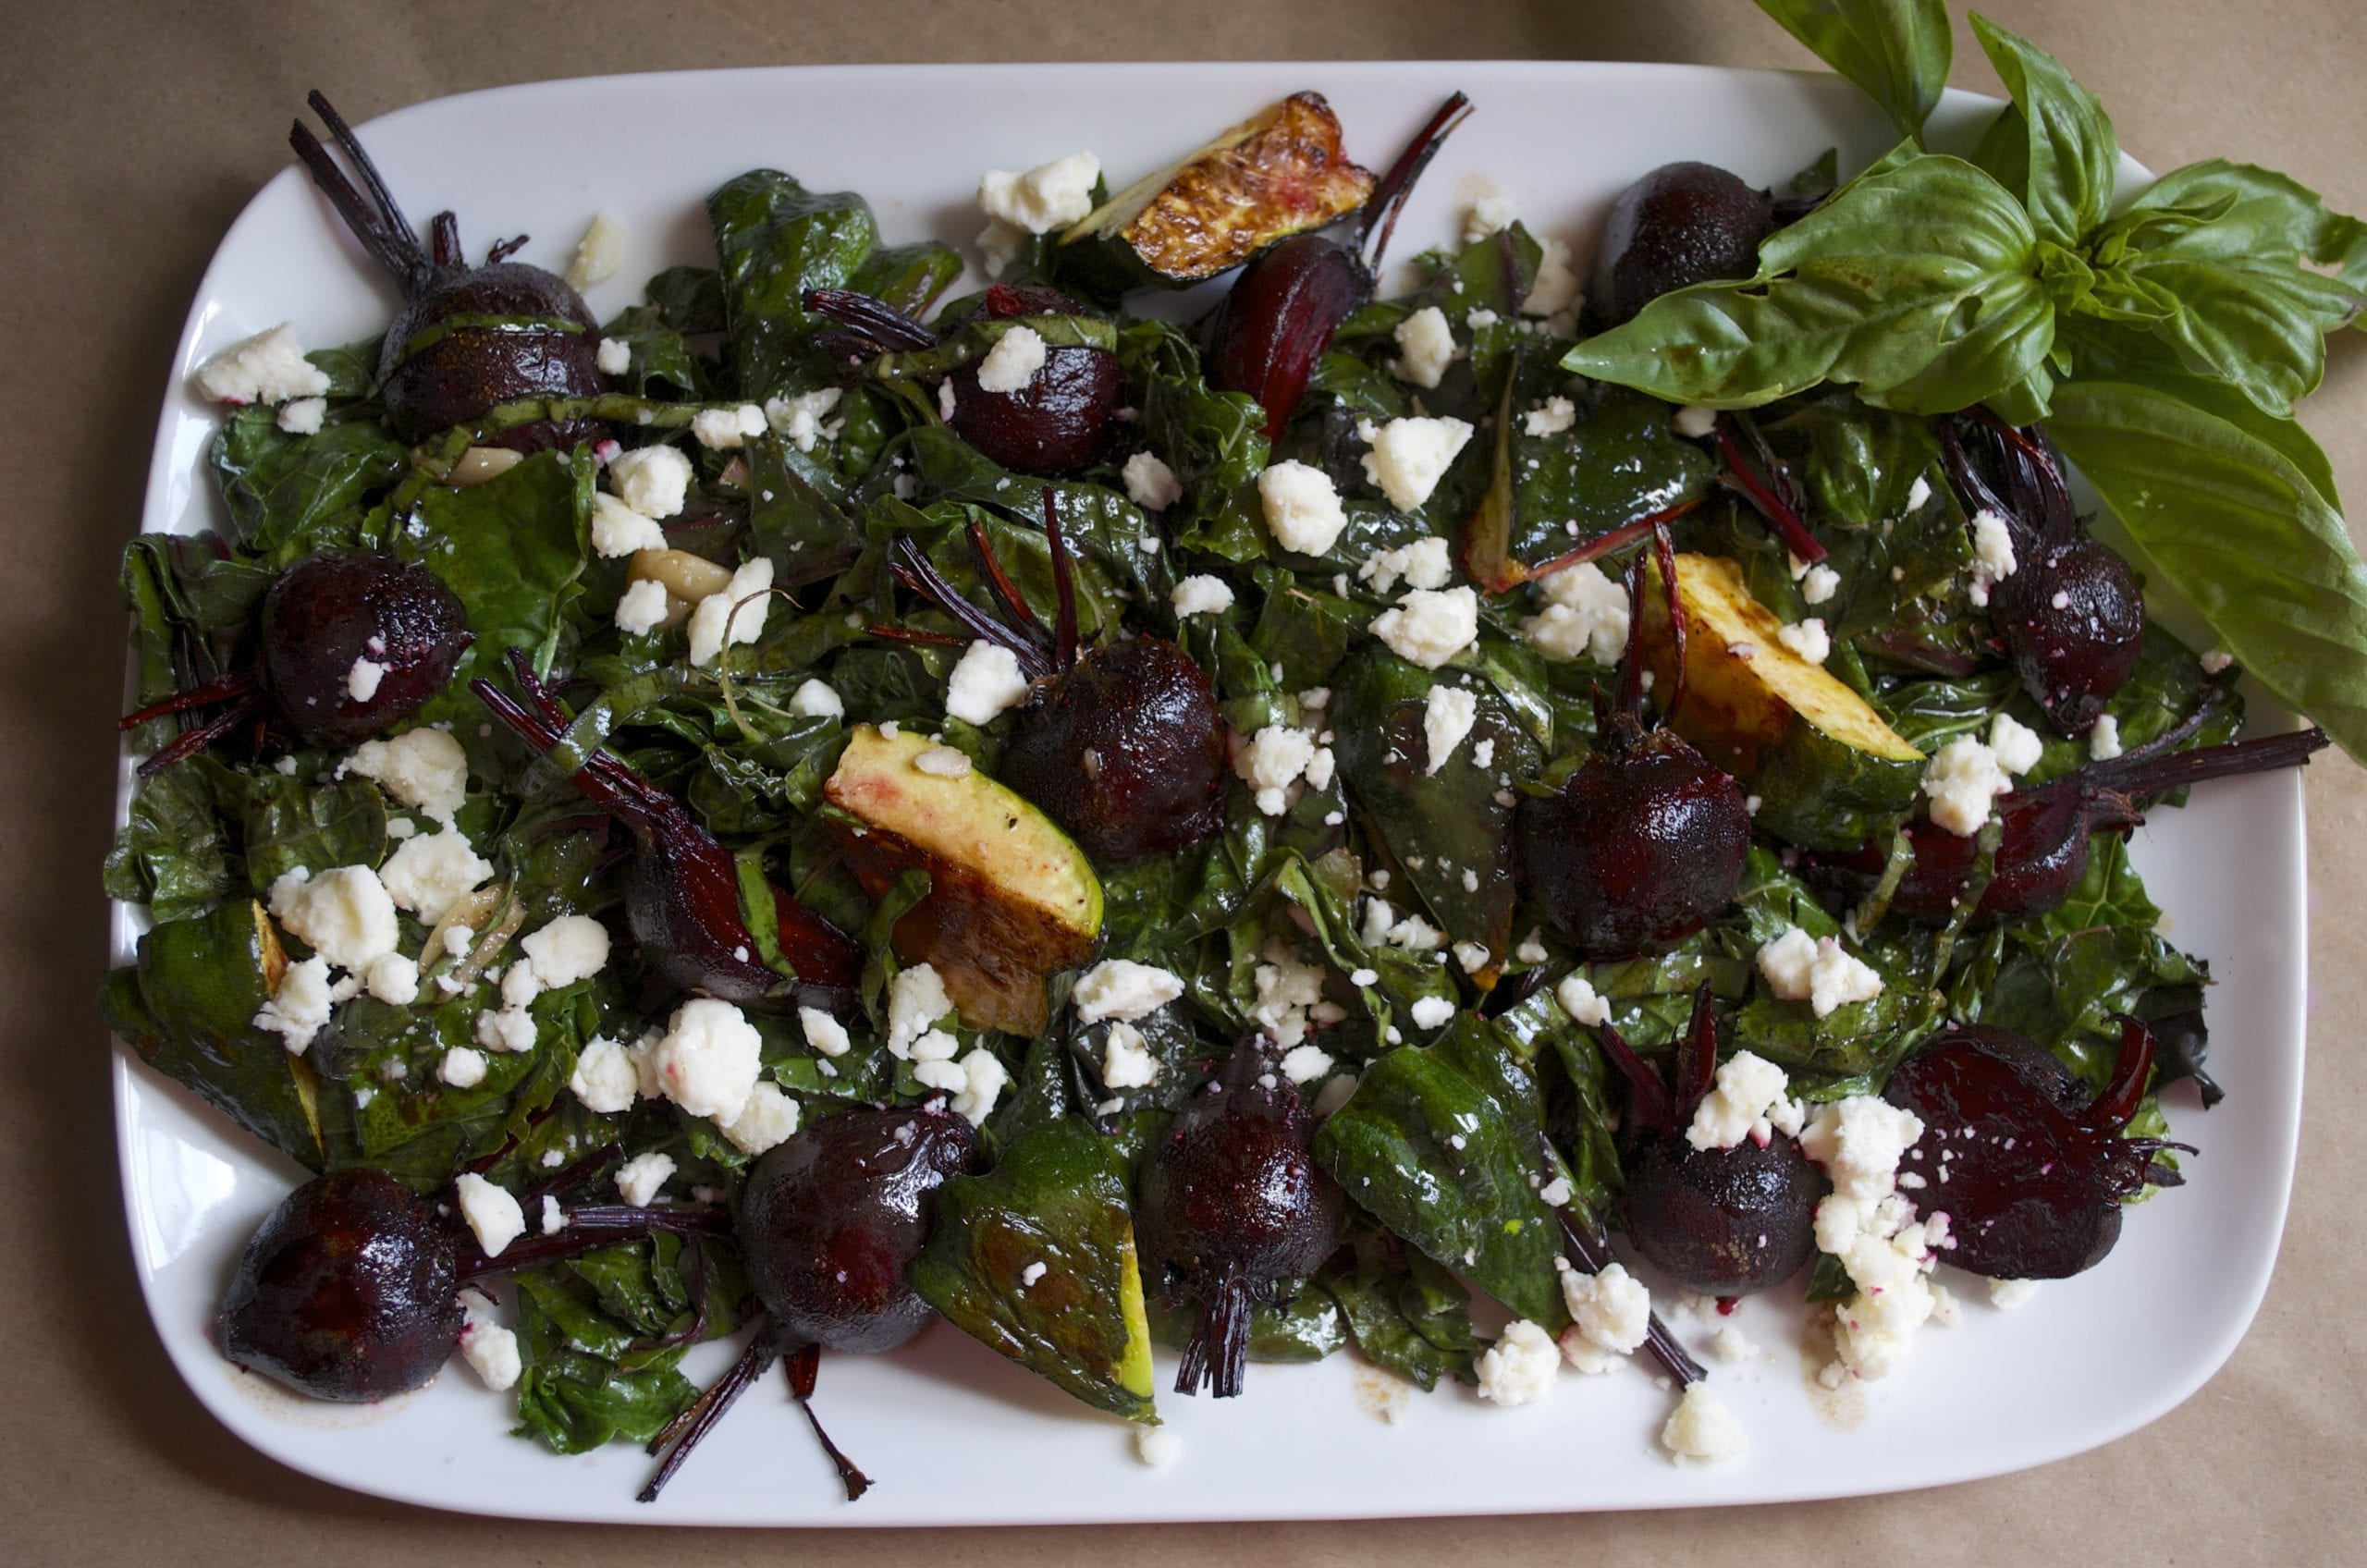 Wilted Kale Salad with Roasted Vegetables and Honey Balsamic Dressing ...